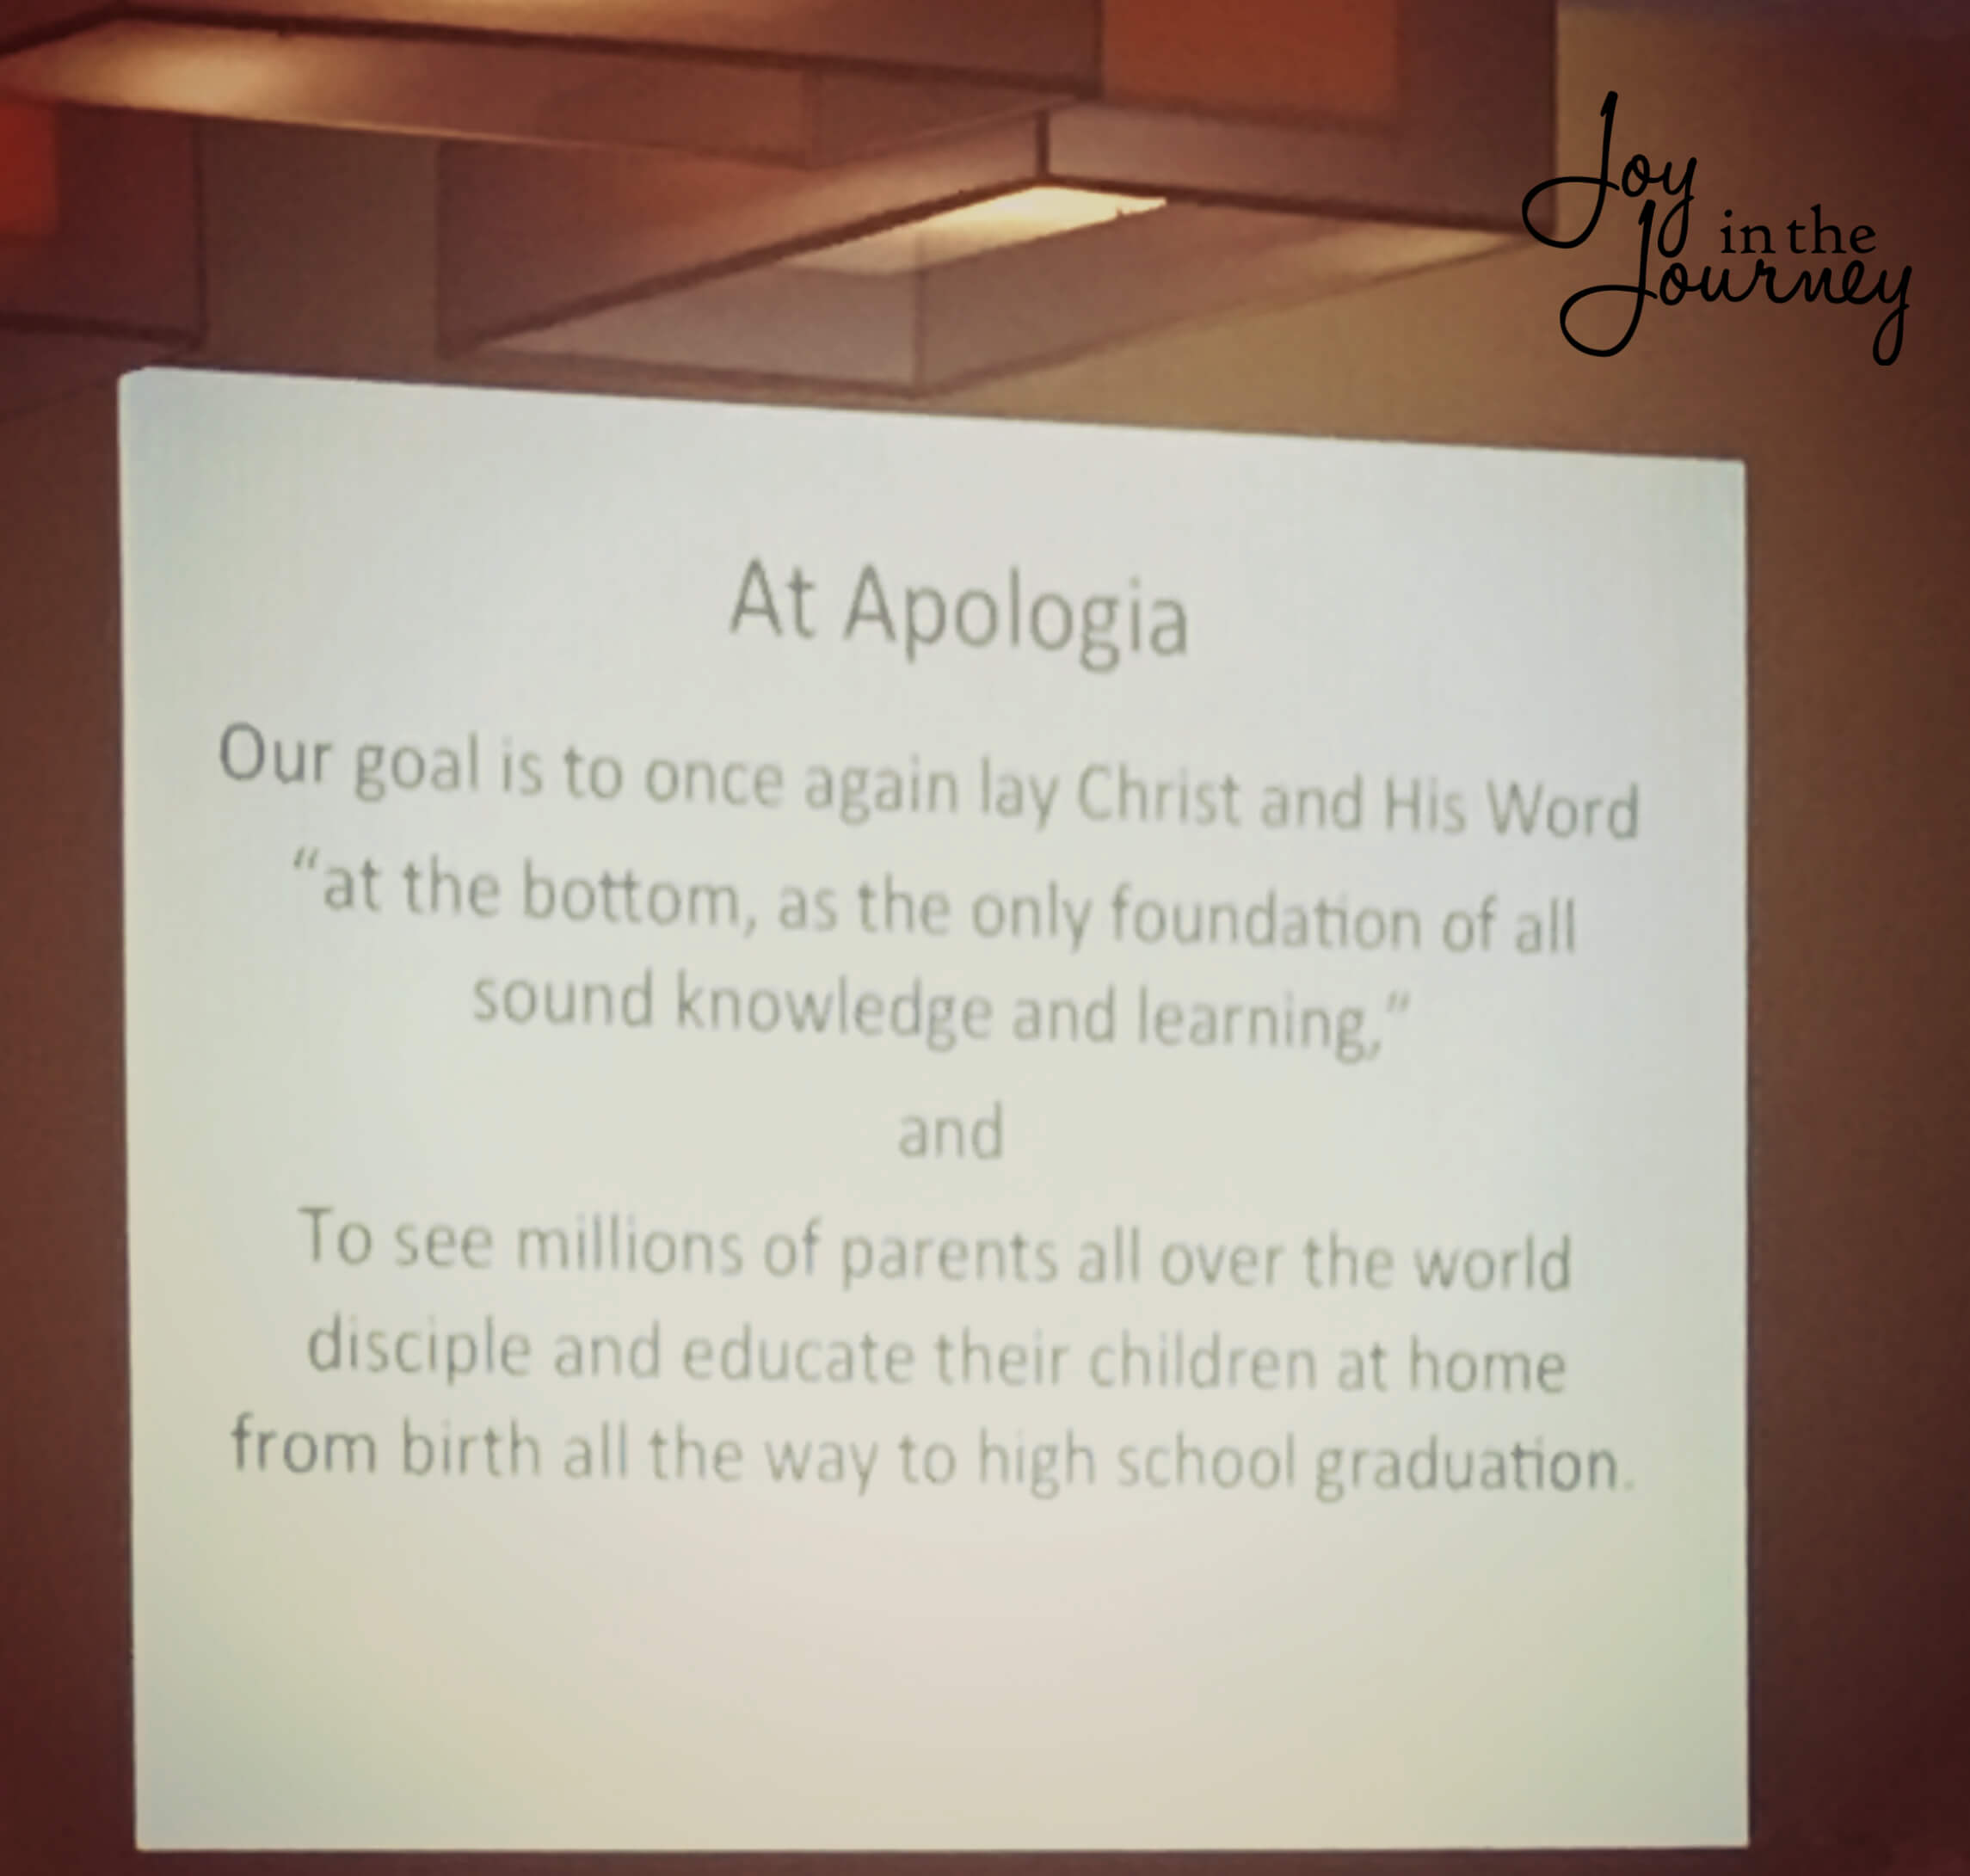 Apologia is the #1 publisher of creation-based homeschool science programs and Bible curriculum with more than fifty top awards from homeschool parents and media. The goal behind Apologia is to publish resources and offer services designed to help homeschooling families learn, live, and defend the Christian faith.